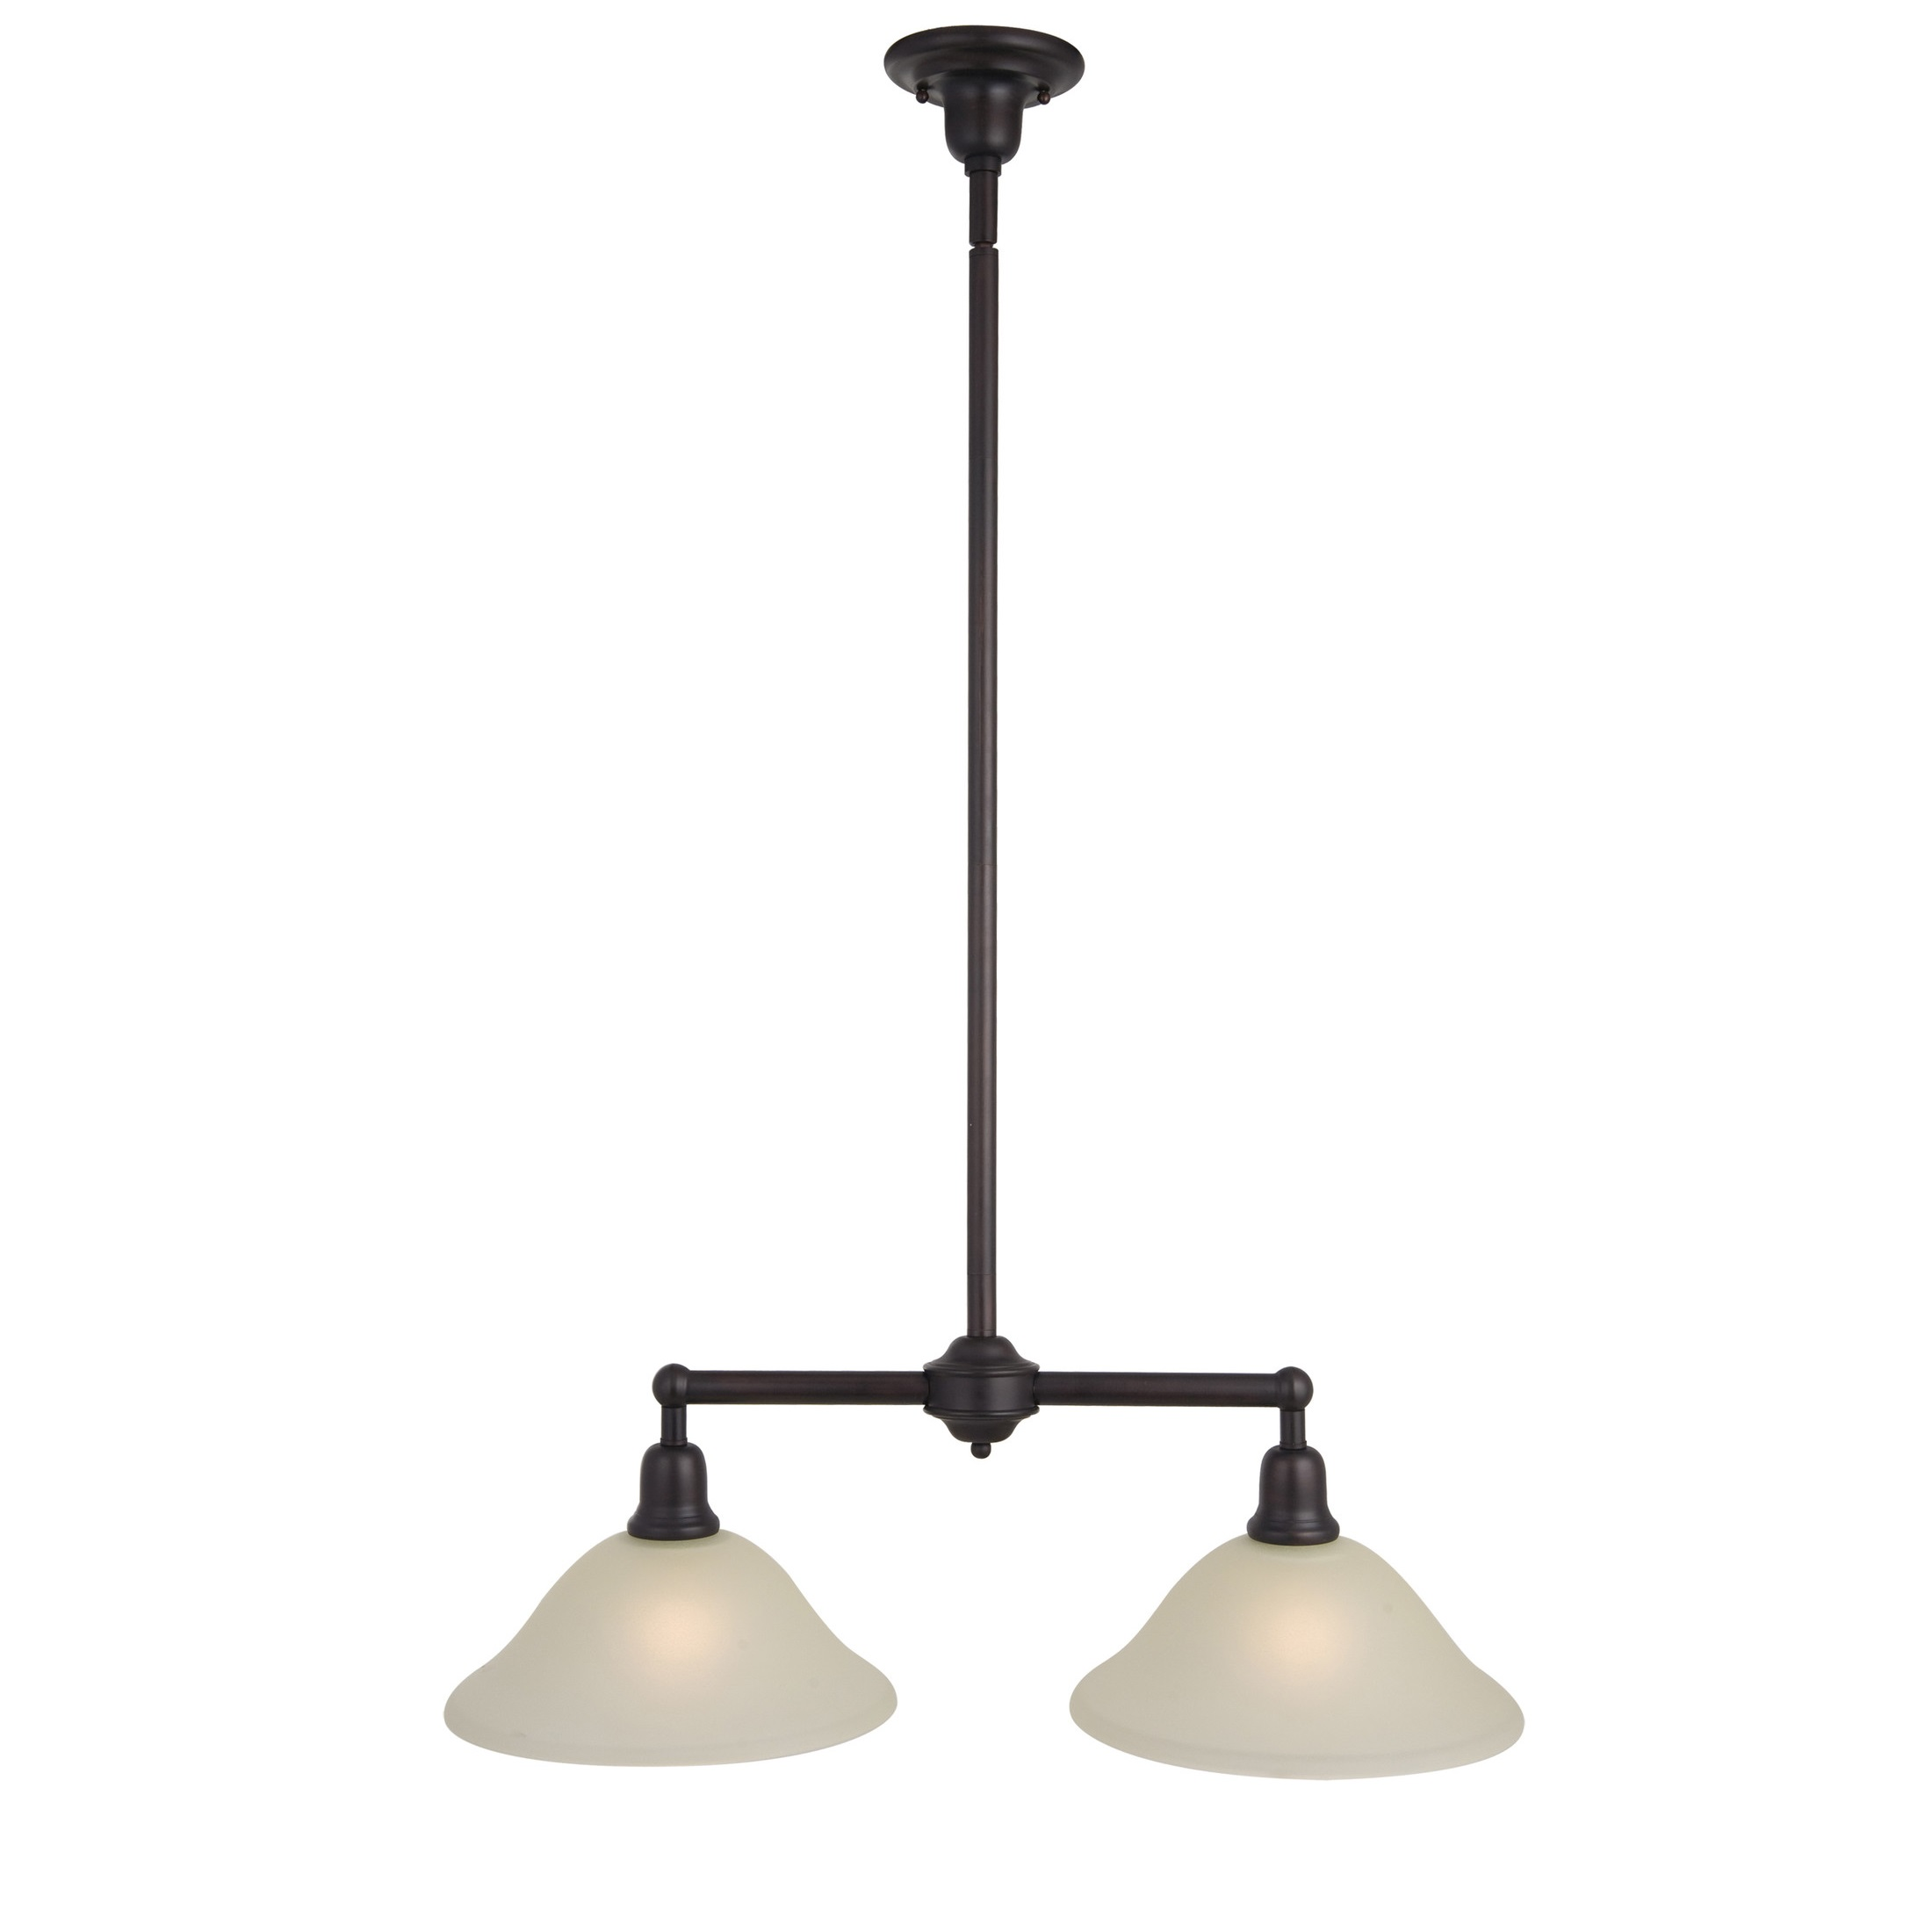 Oil Rubbed Bronze Pendant Light 2200 x 2200